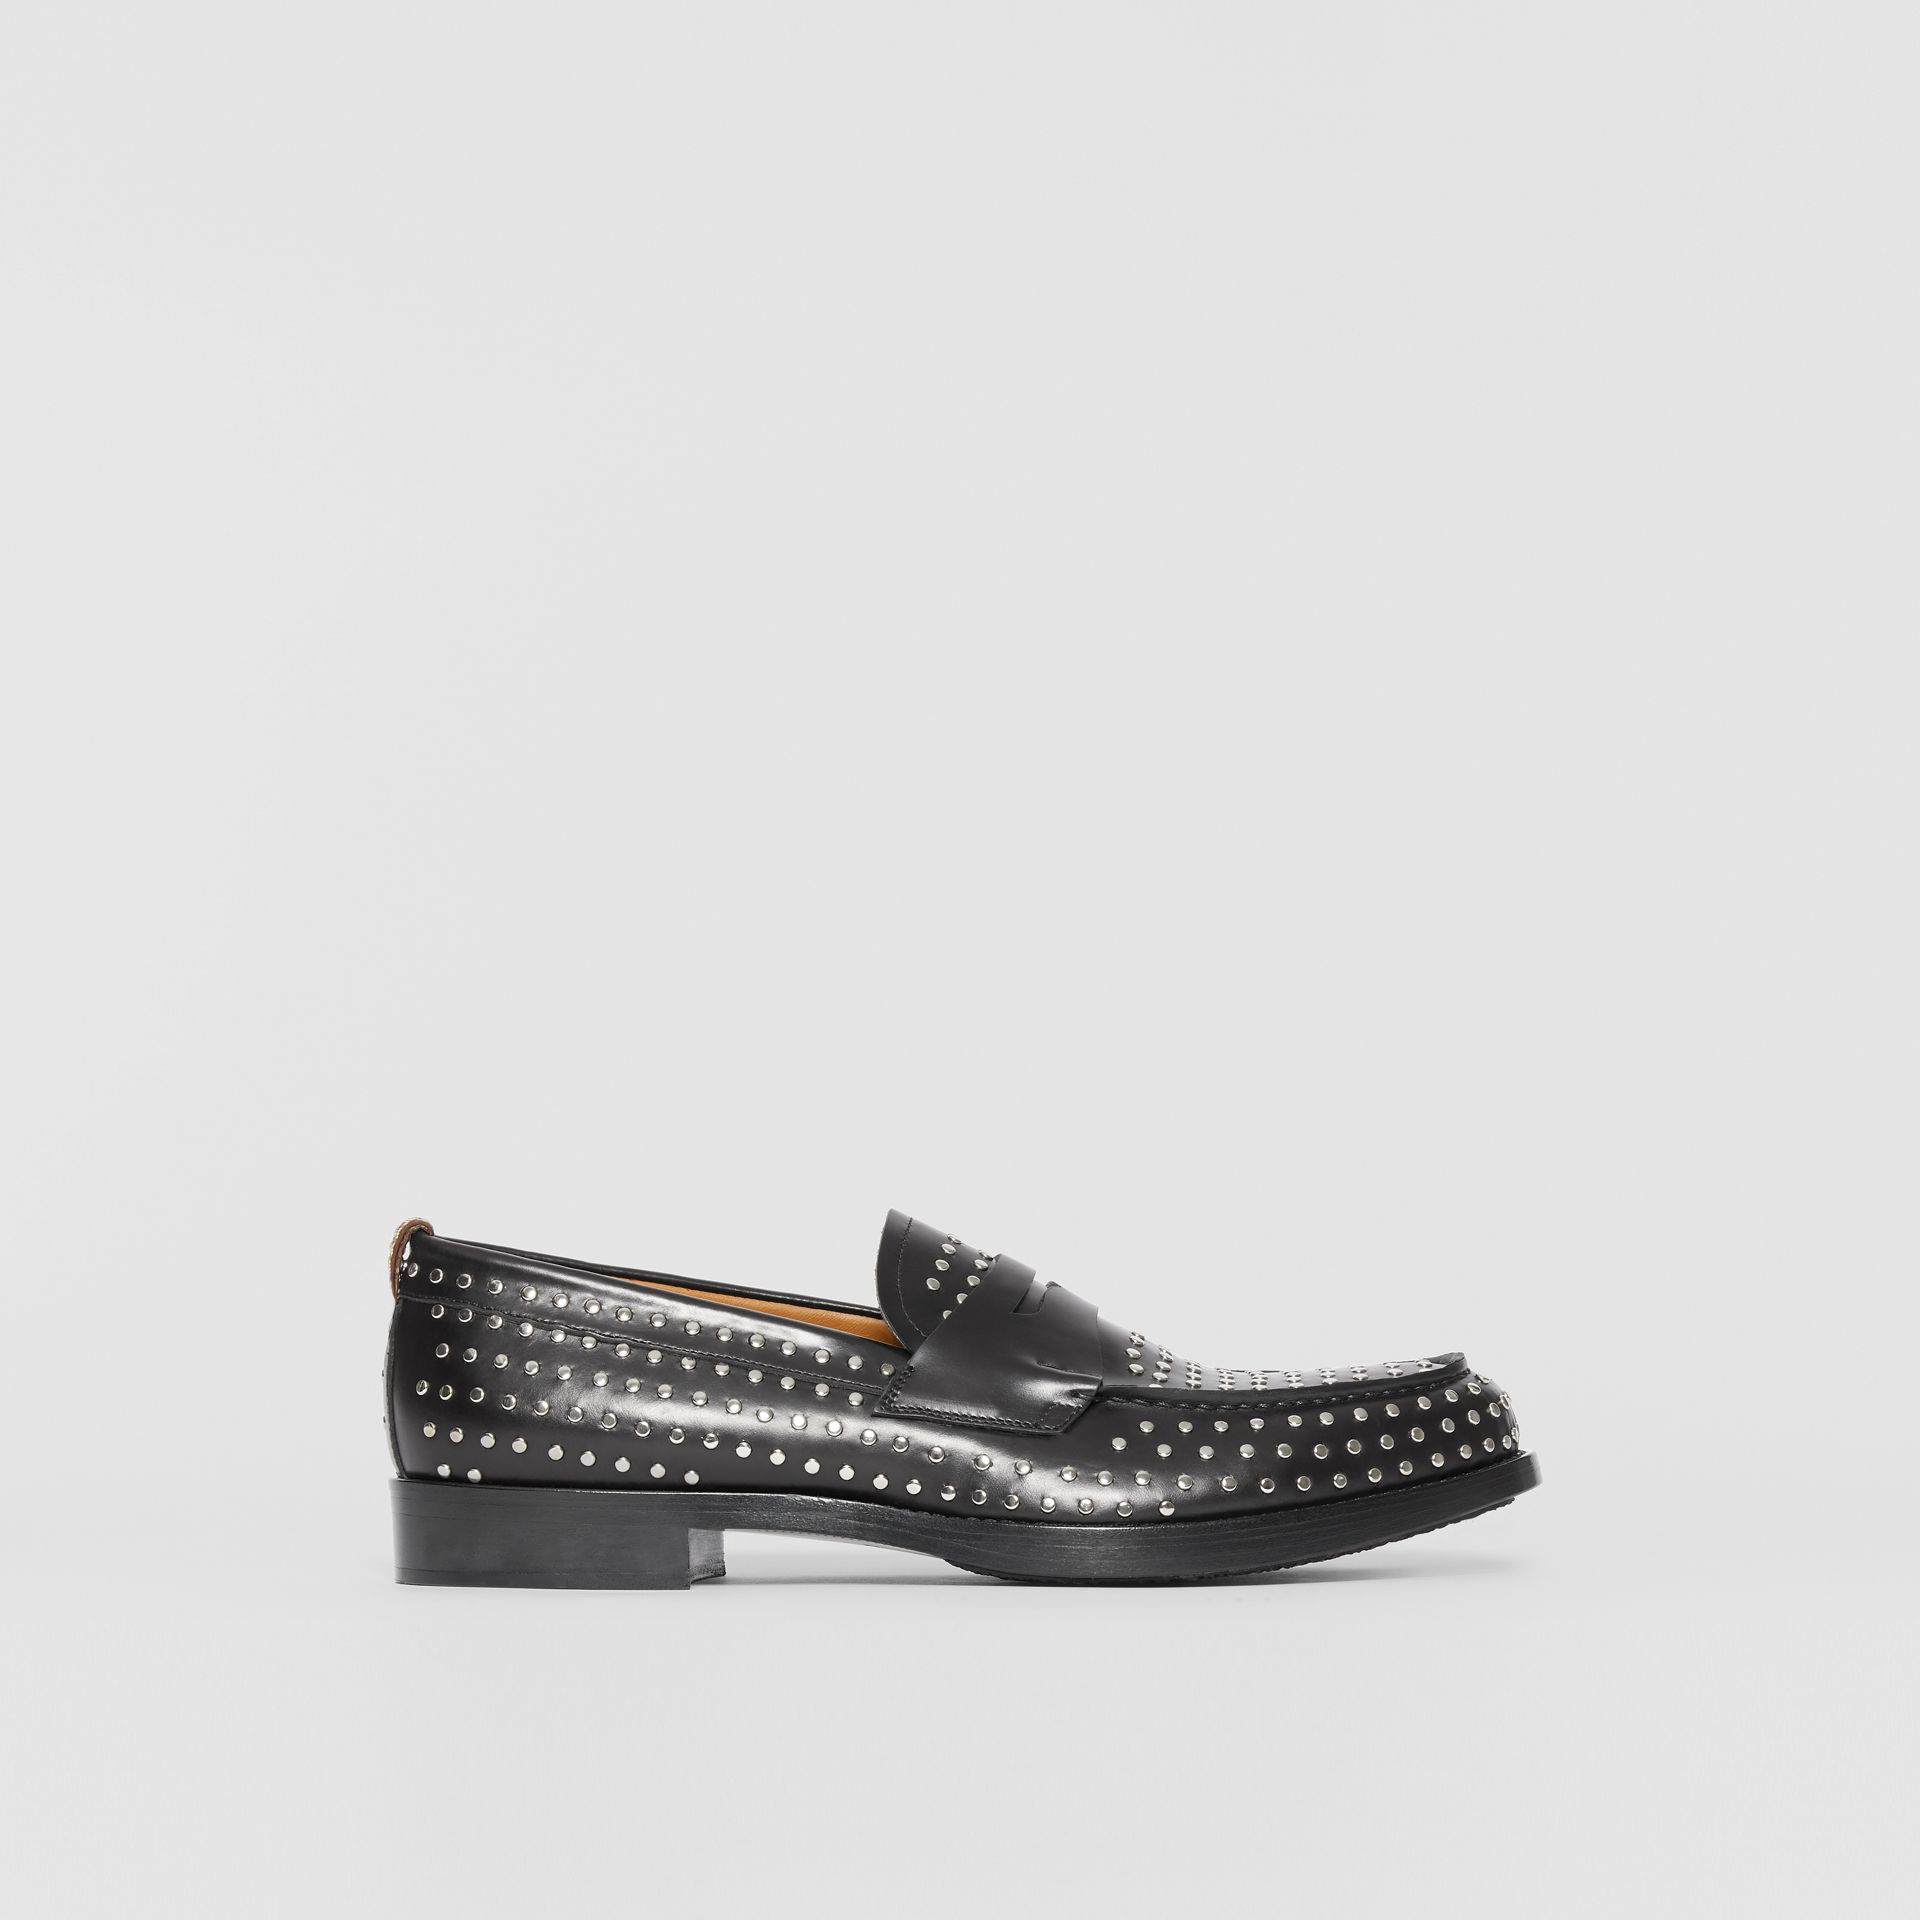 D-ring Detail Studded Leather Loafers in Black - Men | Burberry - gallery image 5